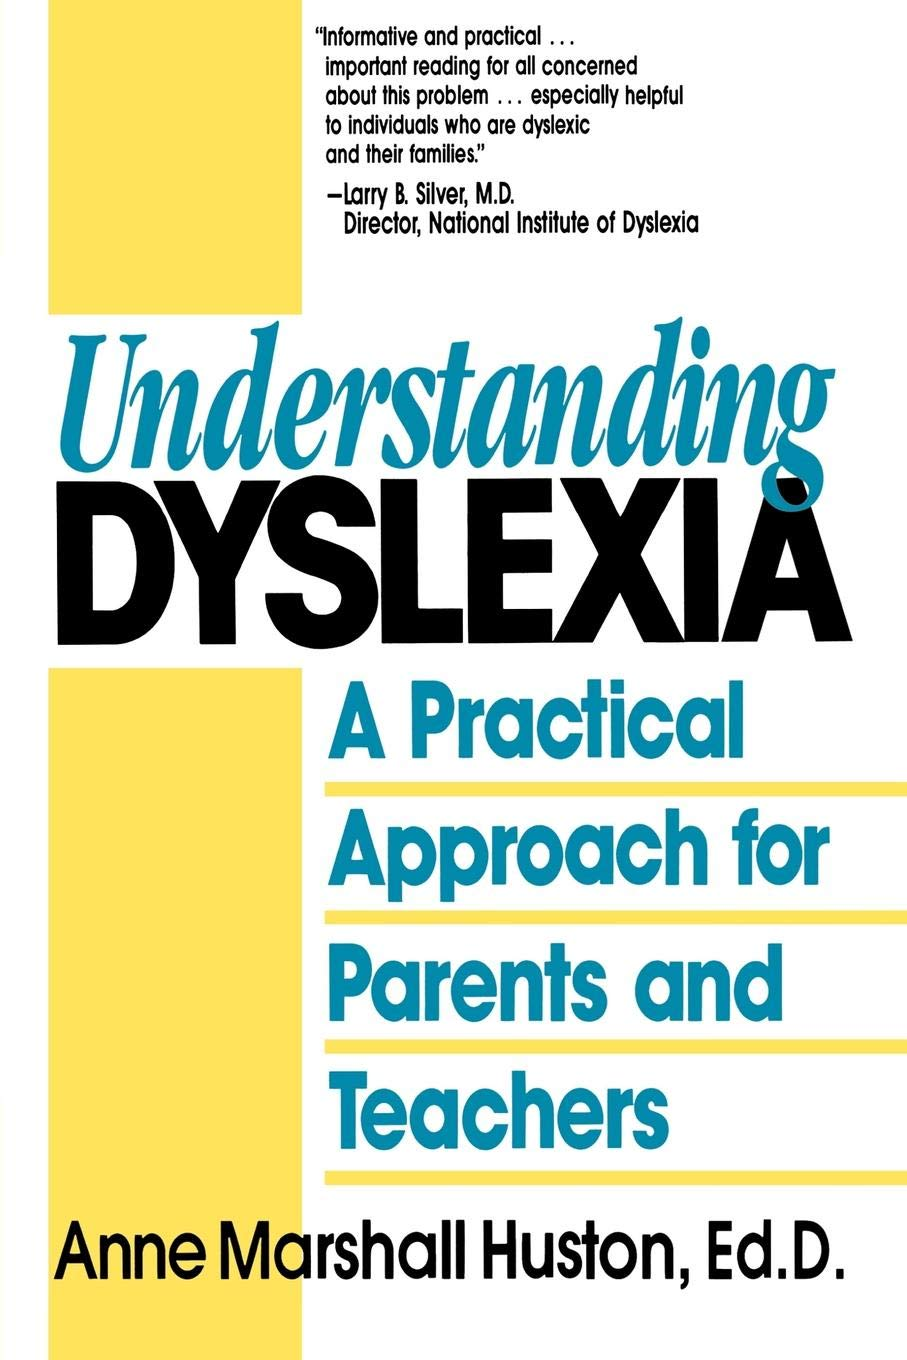 Understanding Dyslexia And Reading >> Understanding Dyslexia A Practical Approach For Parents And